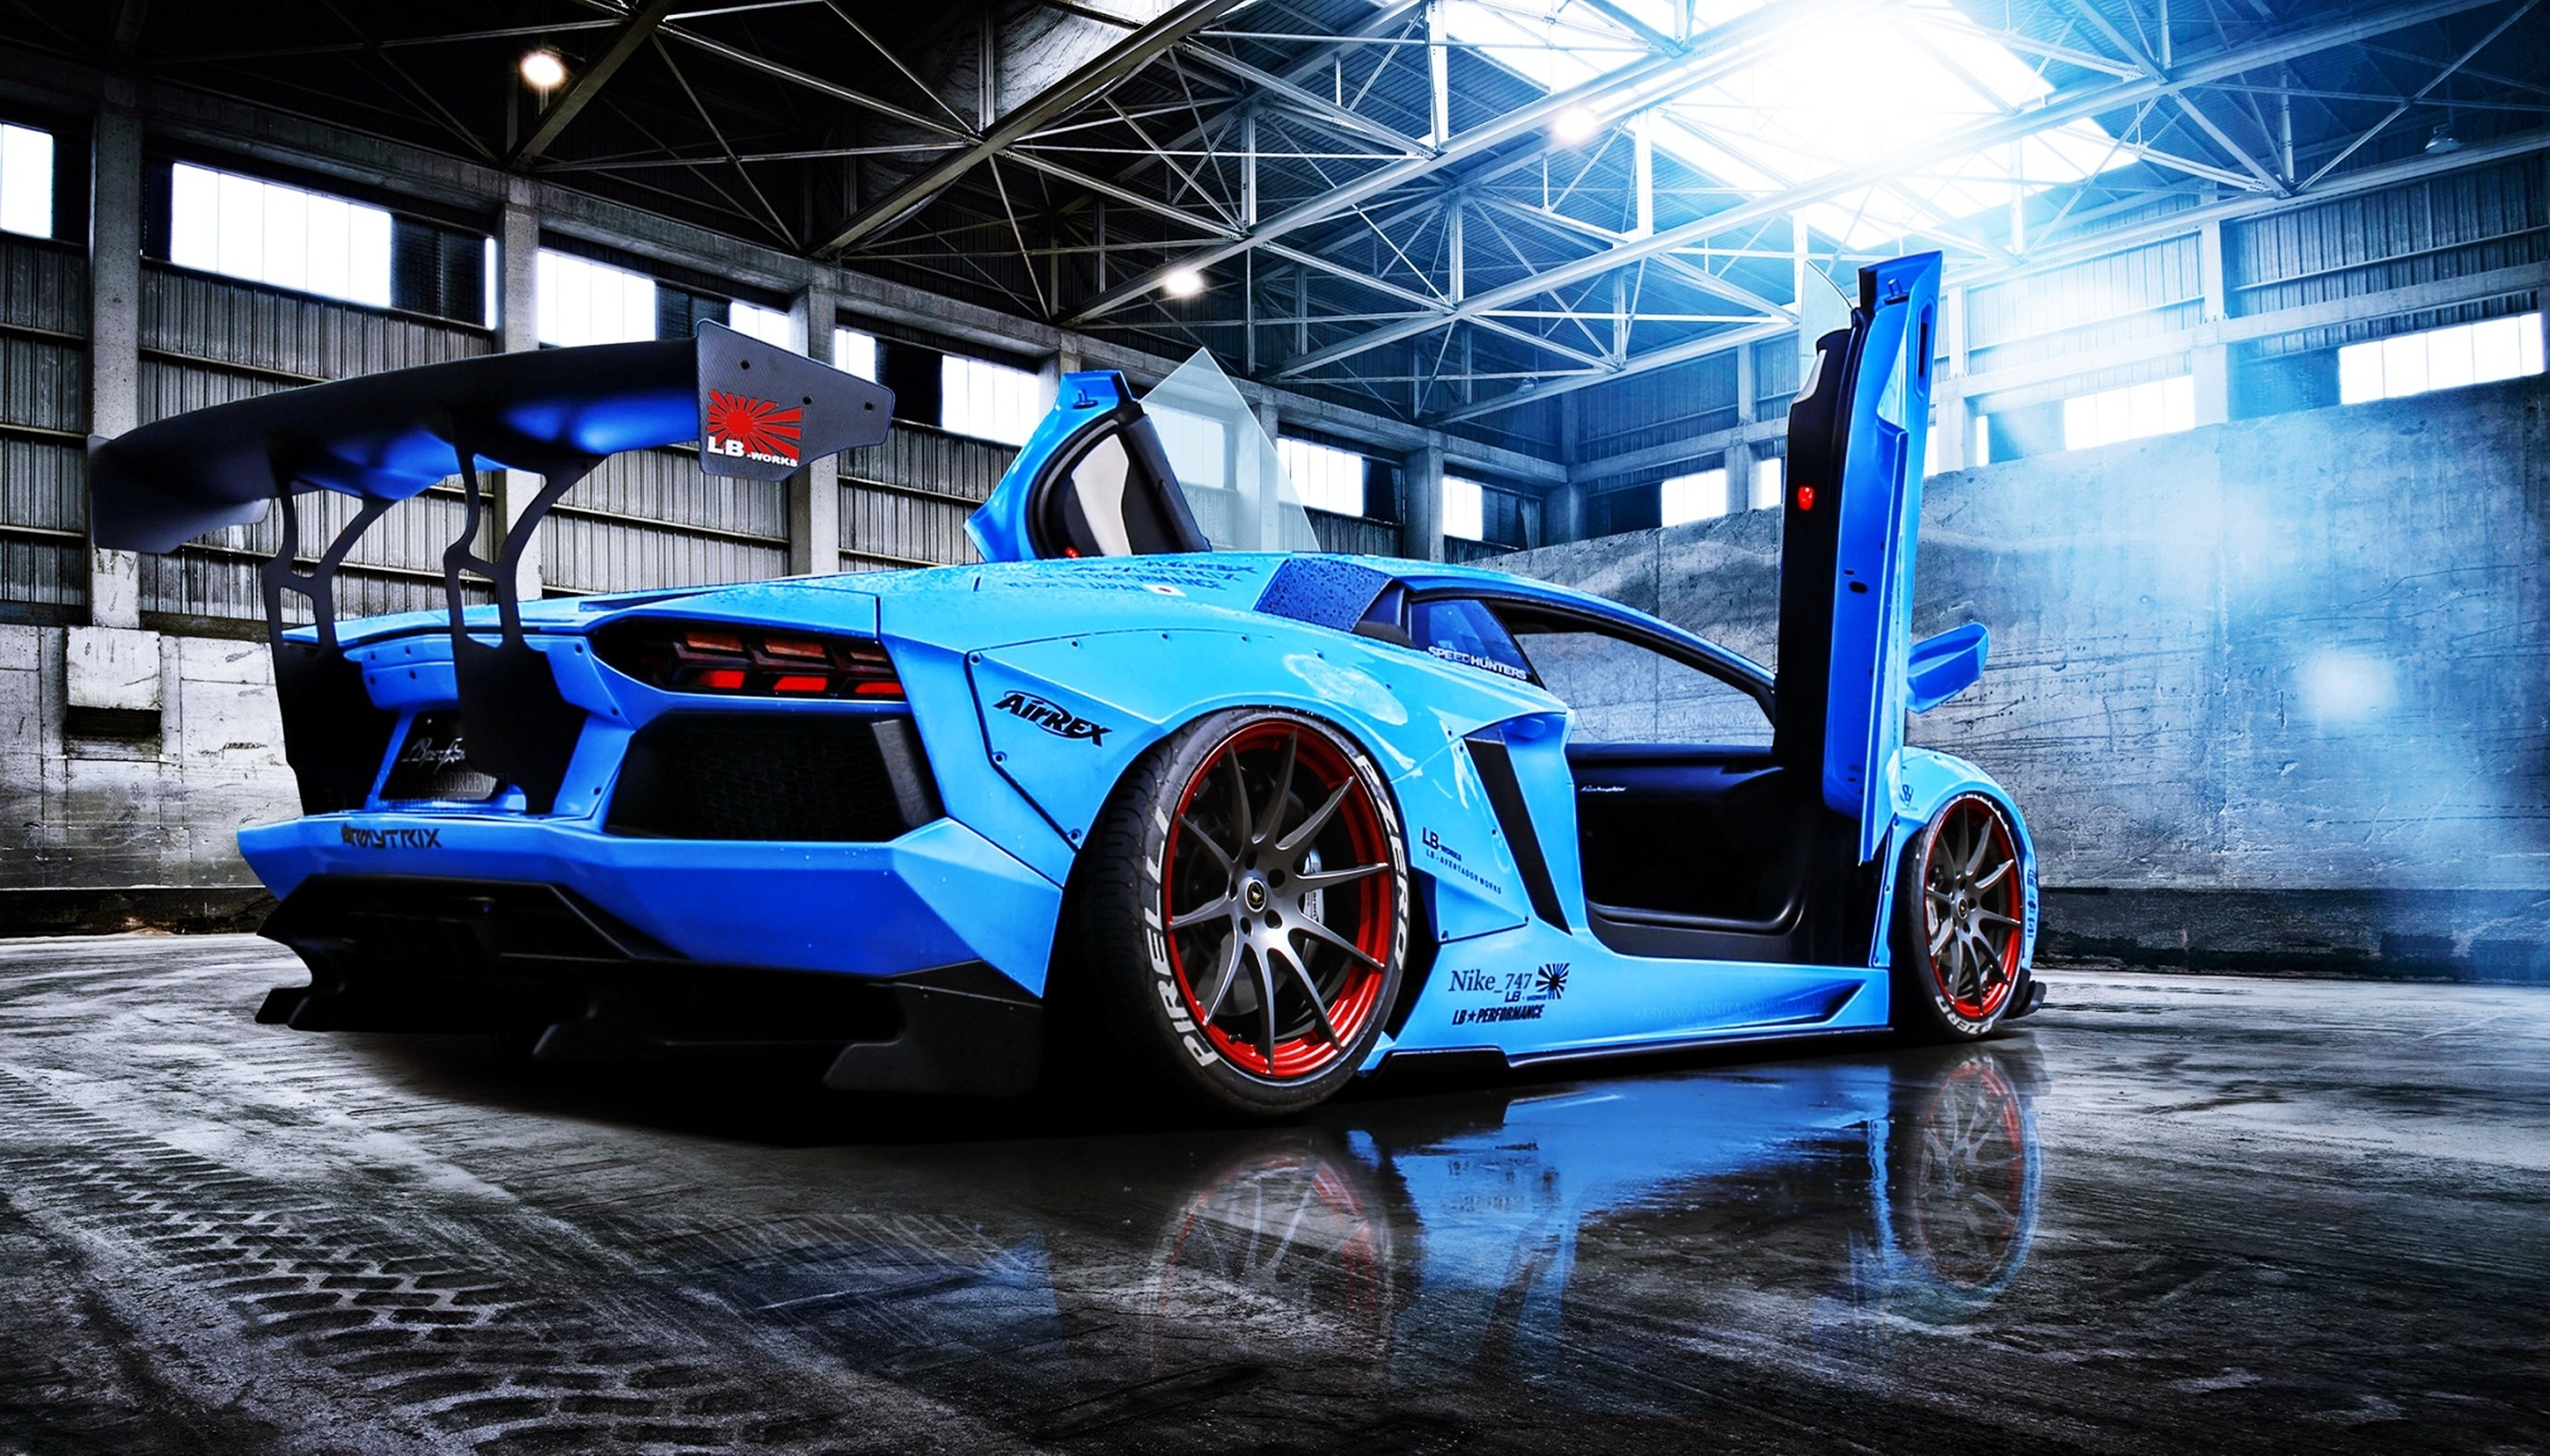 Aventador Beam Blue Cars Doors Lamborghini Liberty Lp720 4 Motors